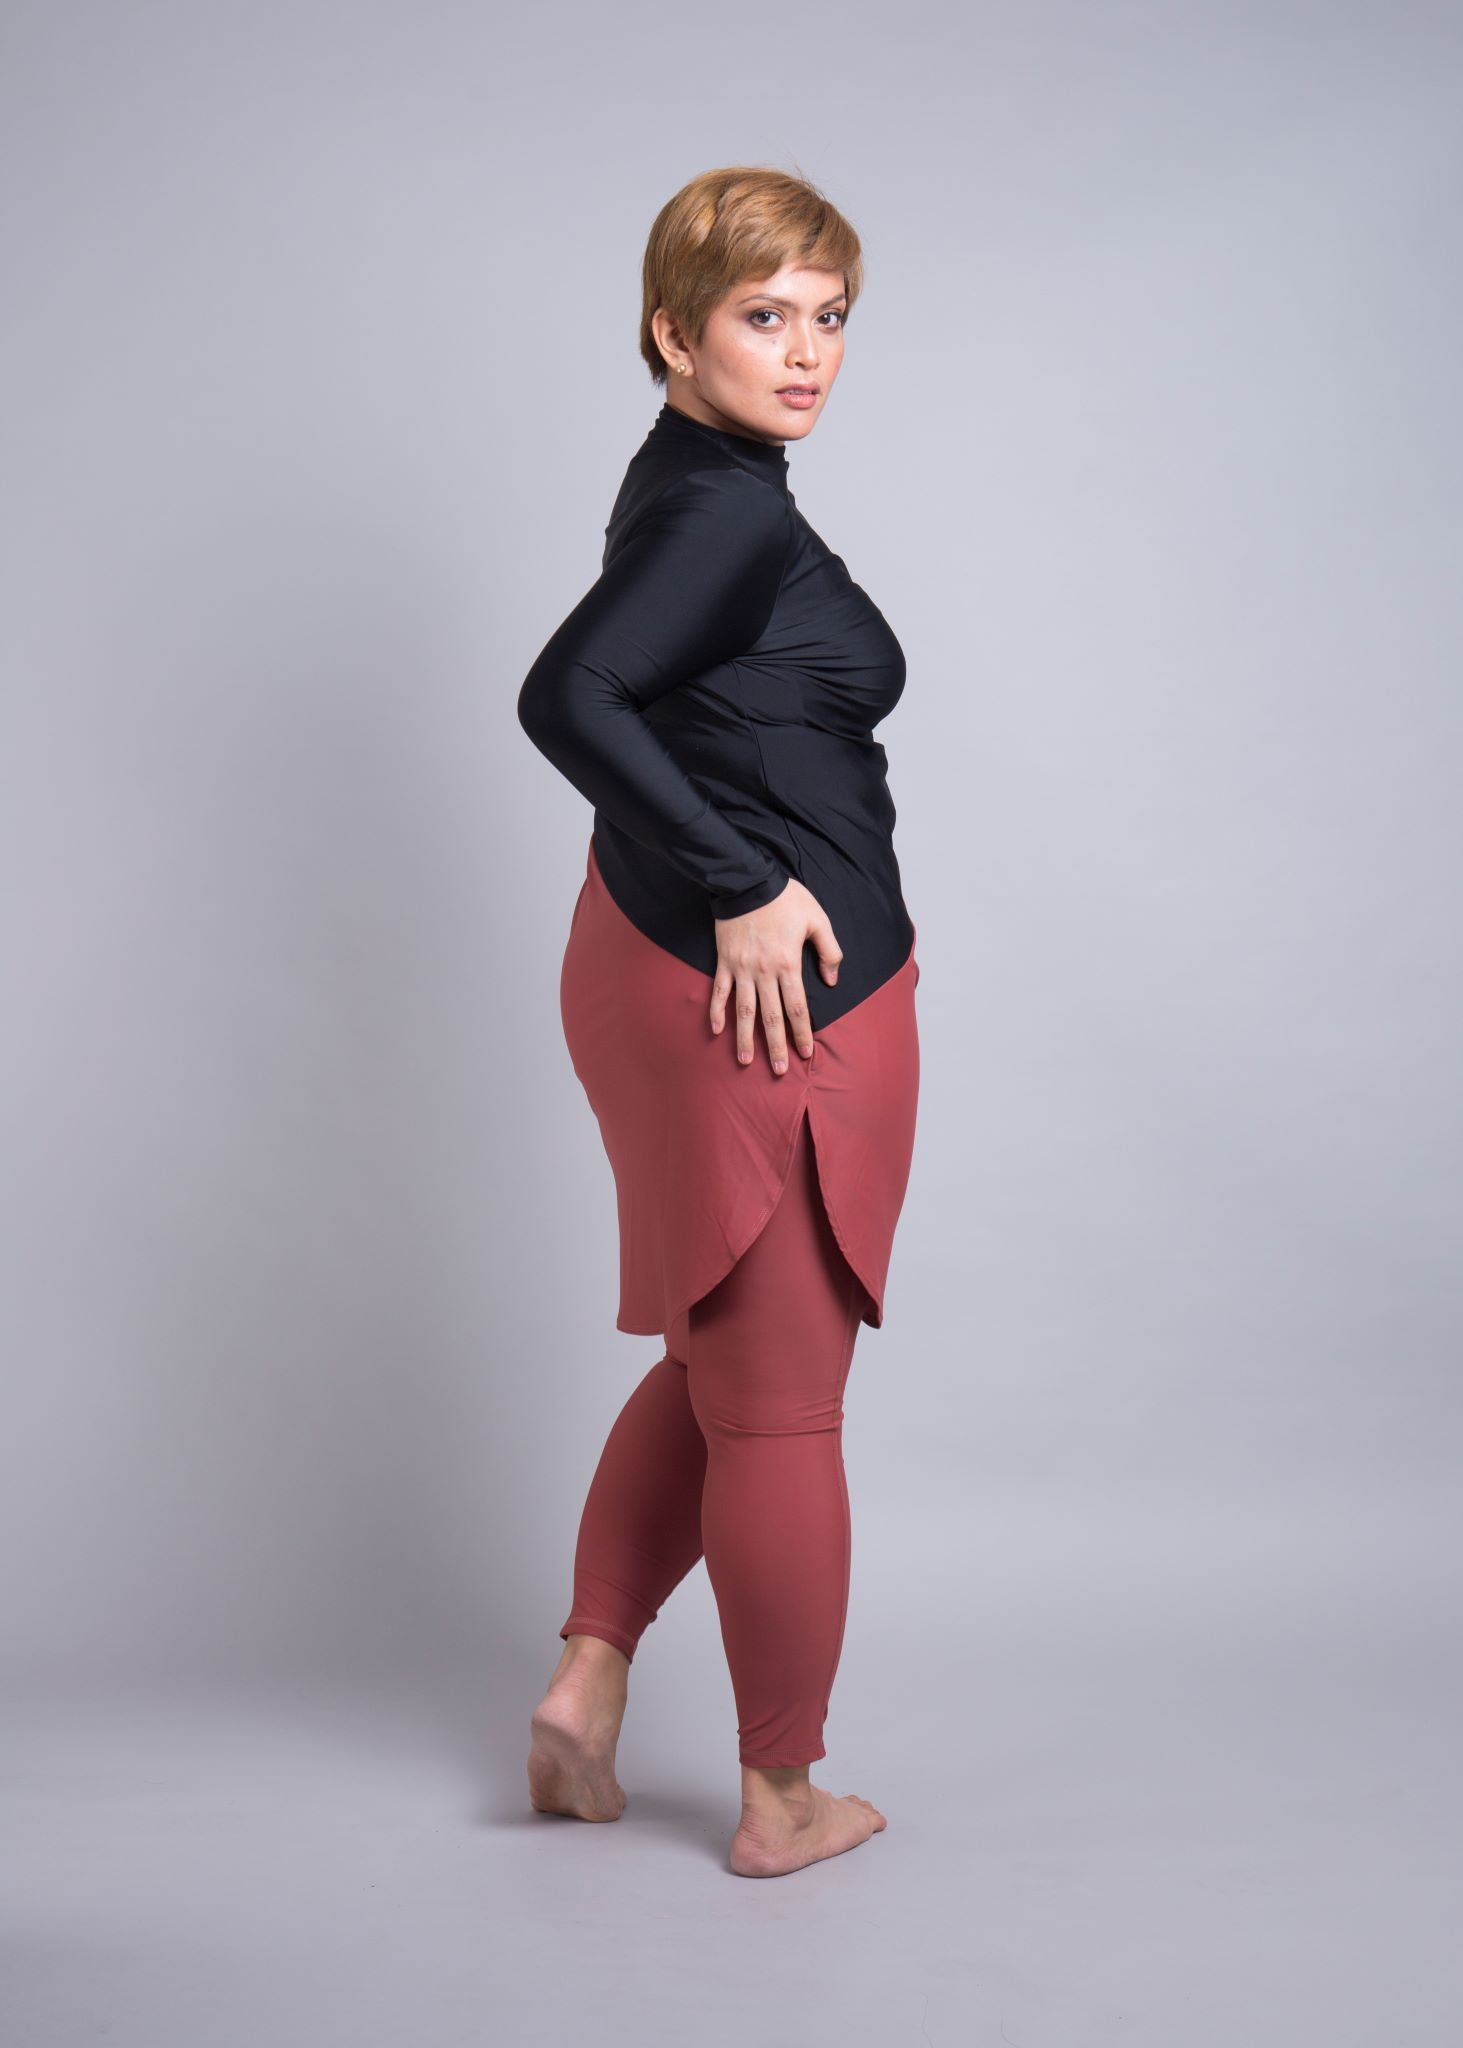 Lanuuk Maya Swimsuit Full Coverage Burkini Black/Marsala Plus size